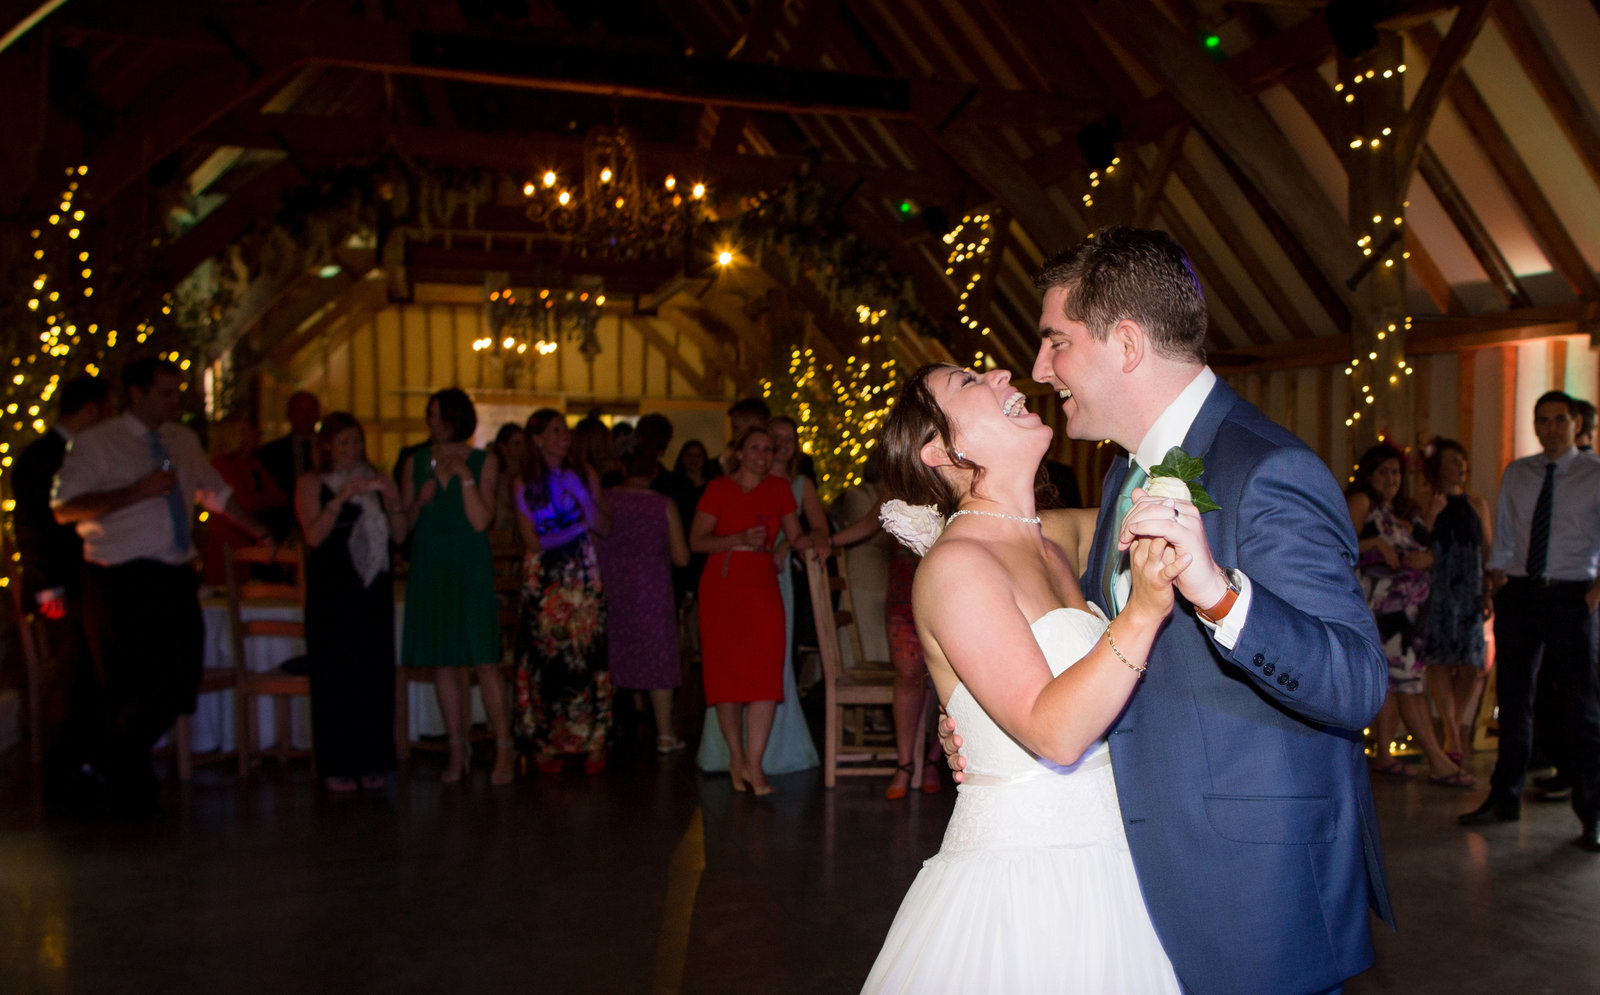 adorlee-0627-southend-barns-wedding-photographer-chichester-west-sussex